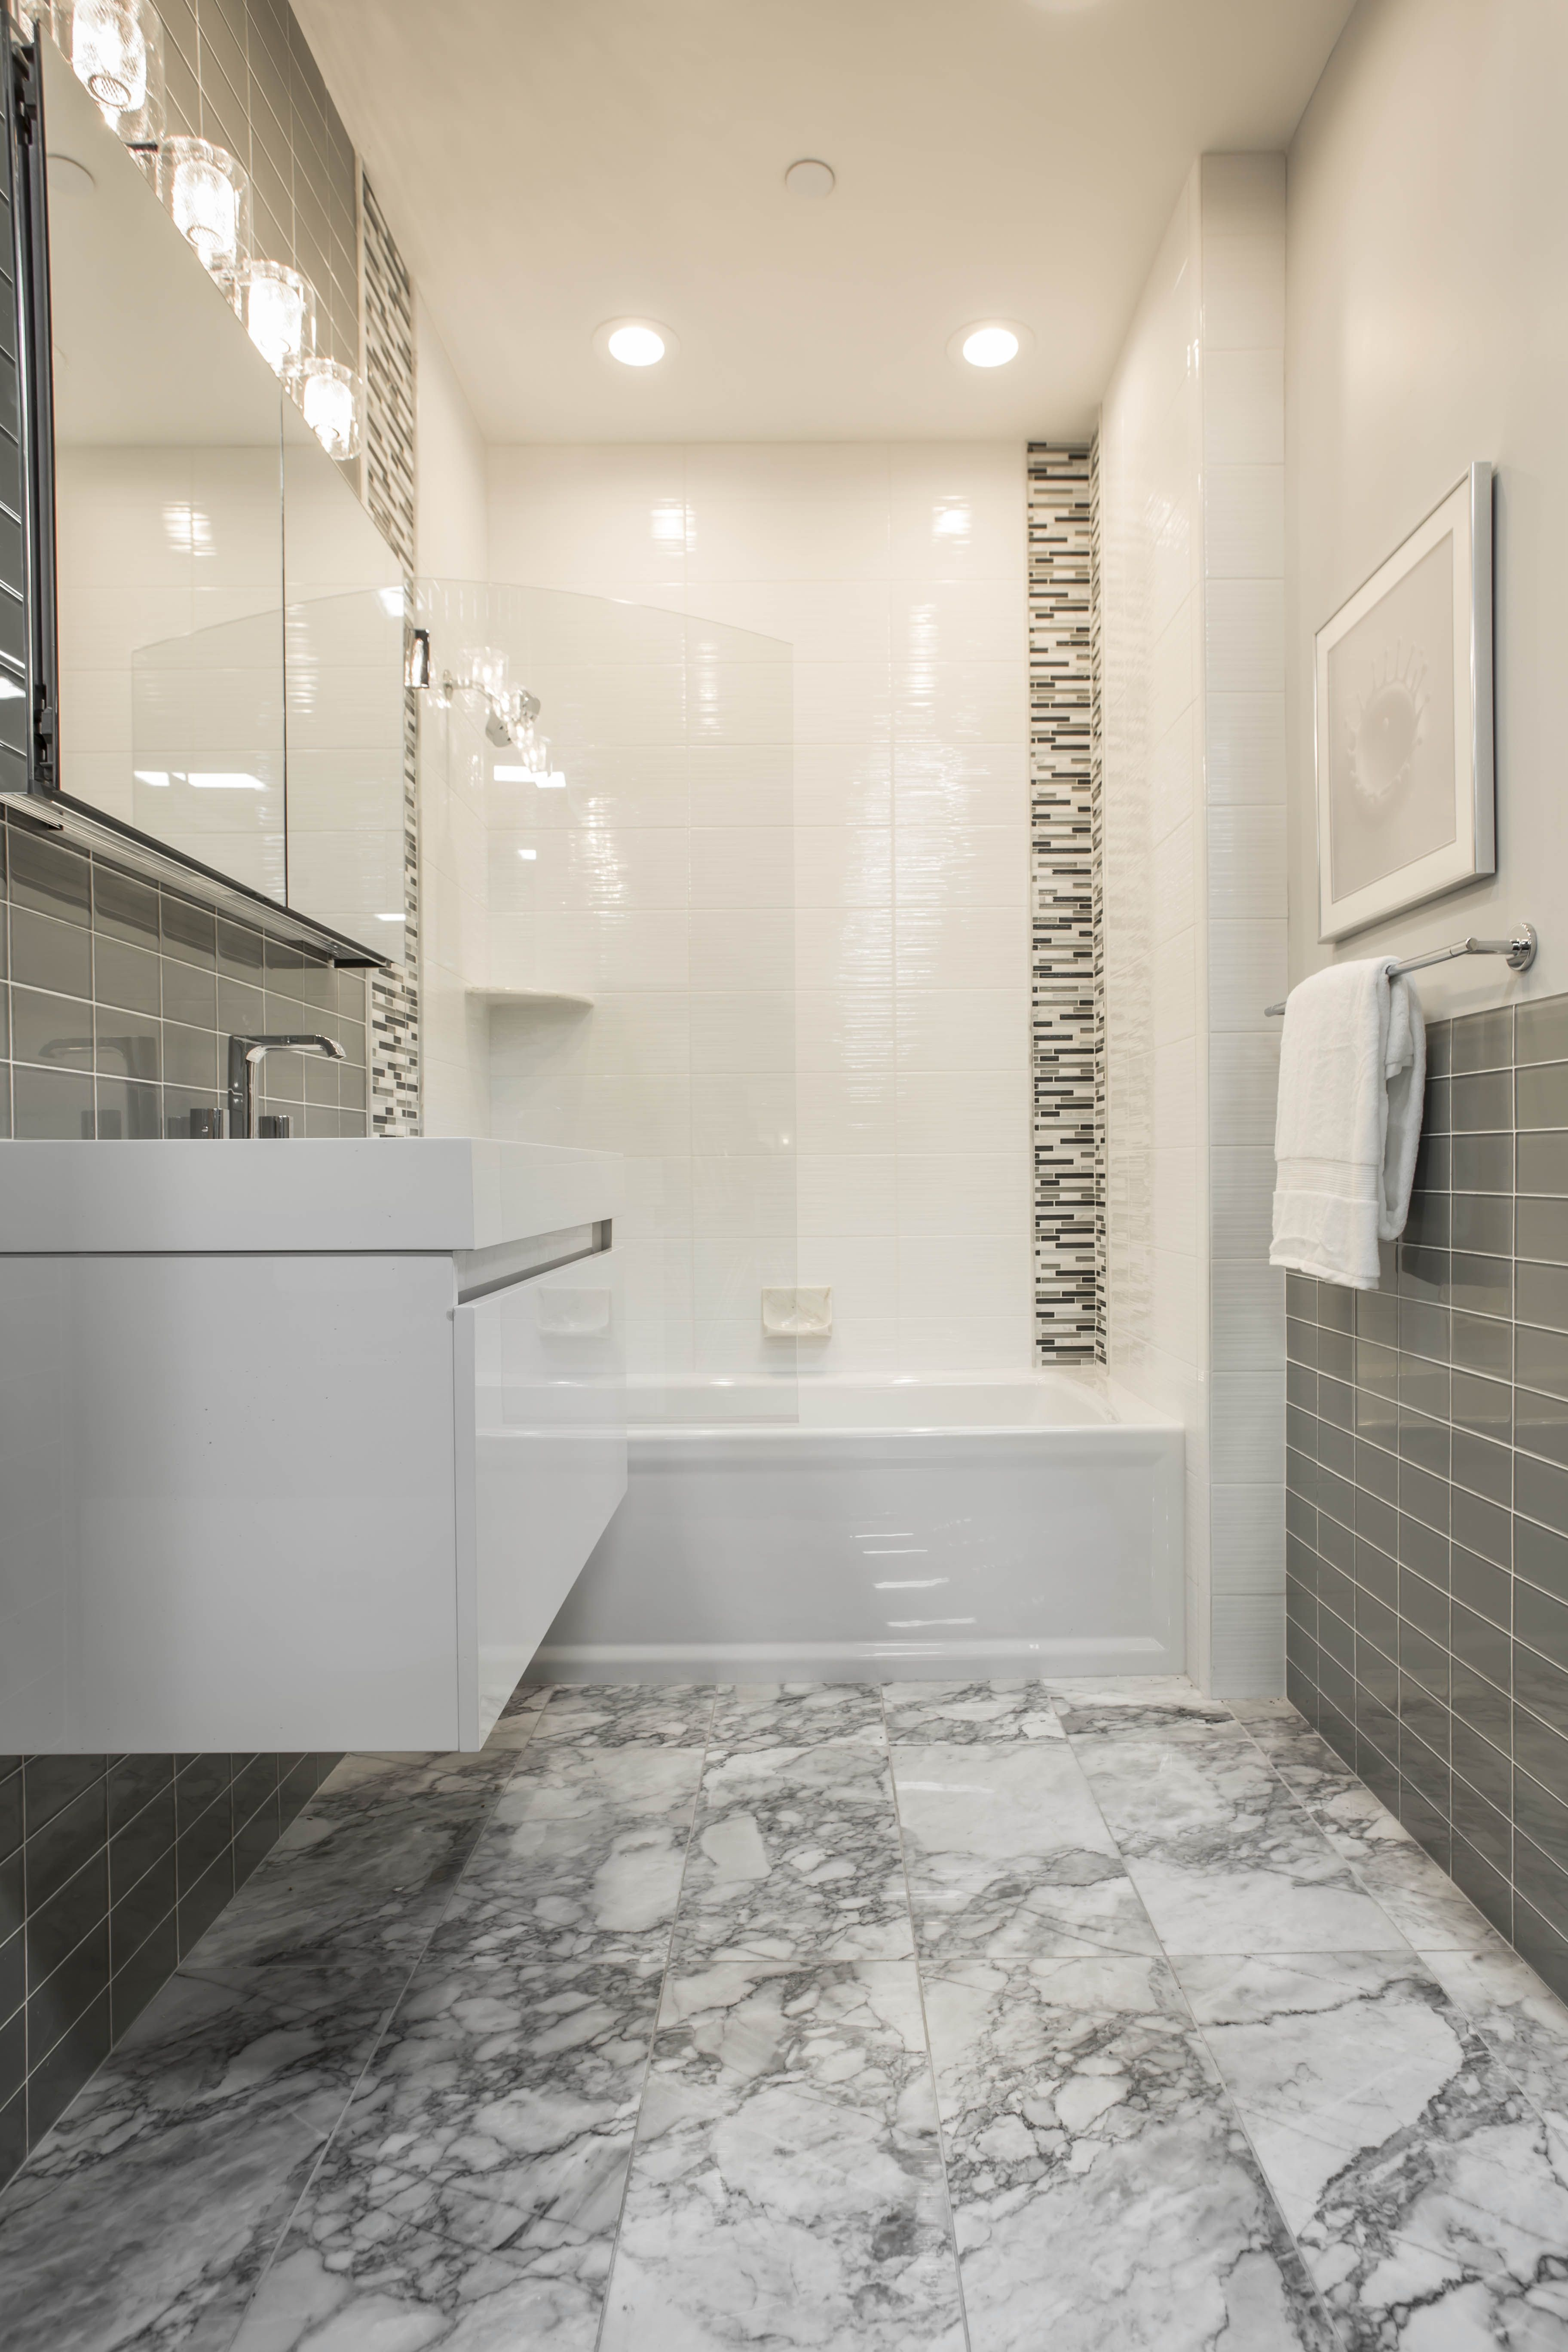 Mixing Marble Glass And Ceramic Tiles Adds Interest And Allows You To Be More Flexible Wit Marble Bathroom Floor Glass Floor Tiles Bathroom Bathroom Wall Tile